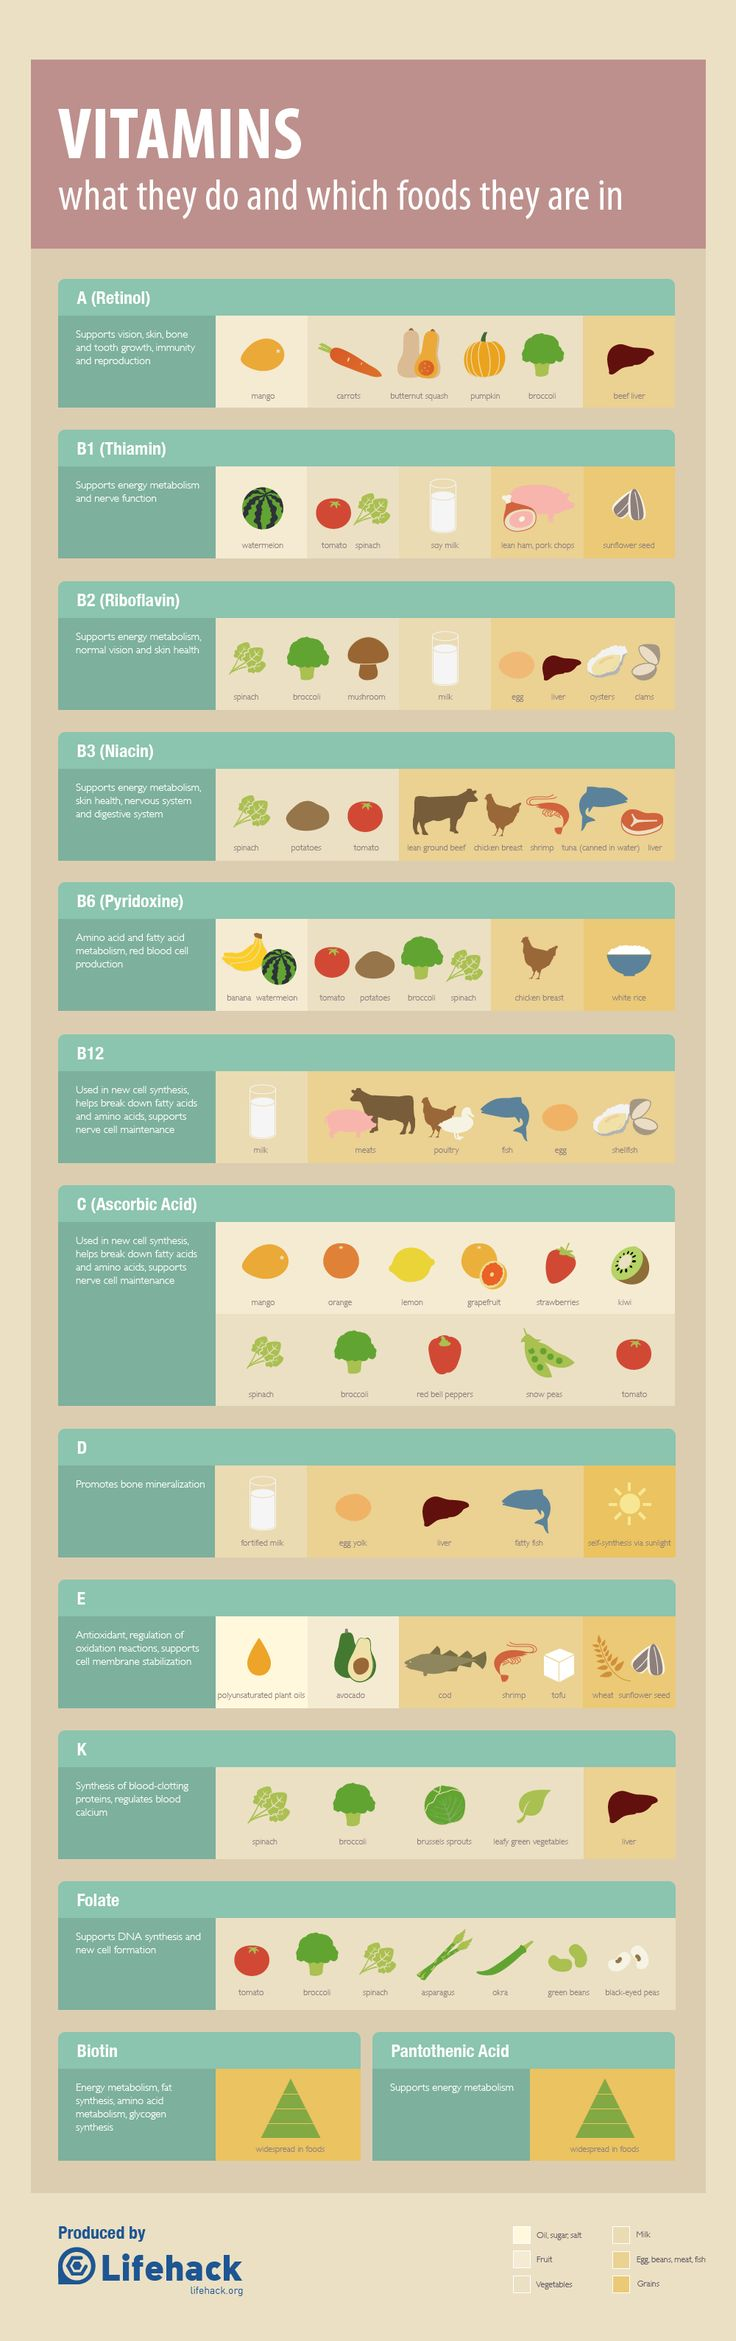 Vitamins What They Do And Which Foods They Are In